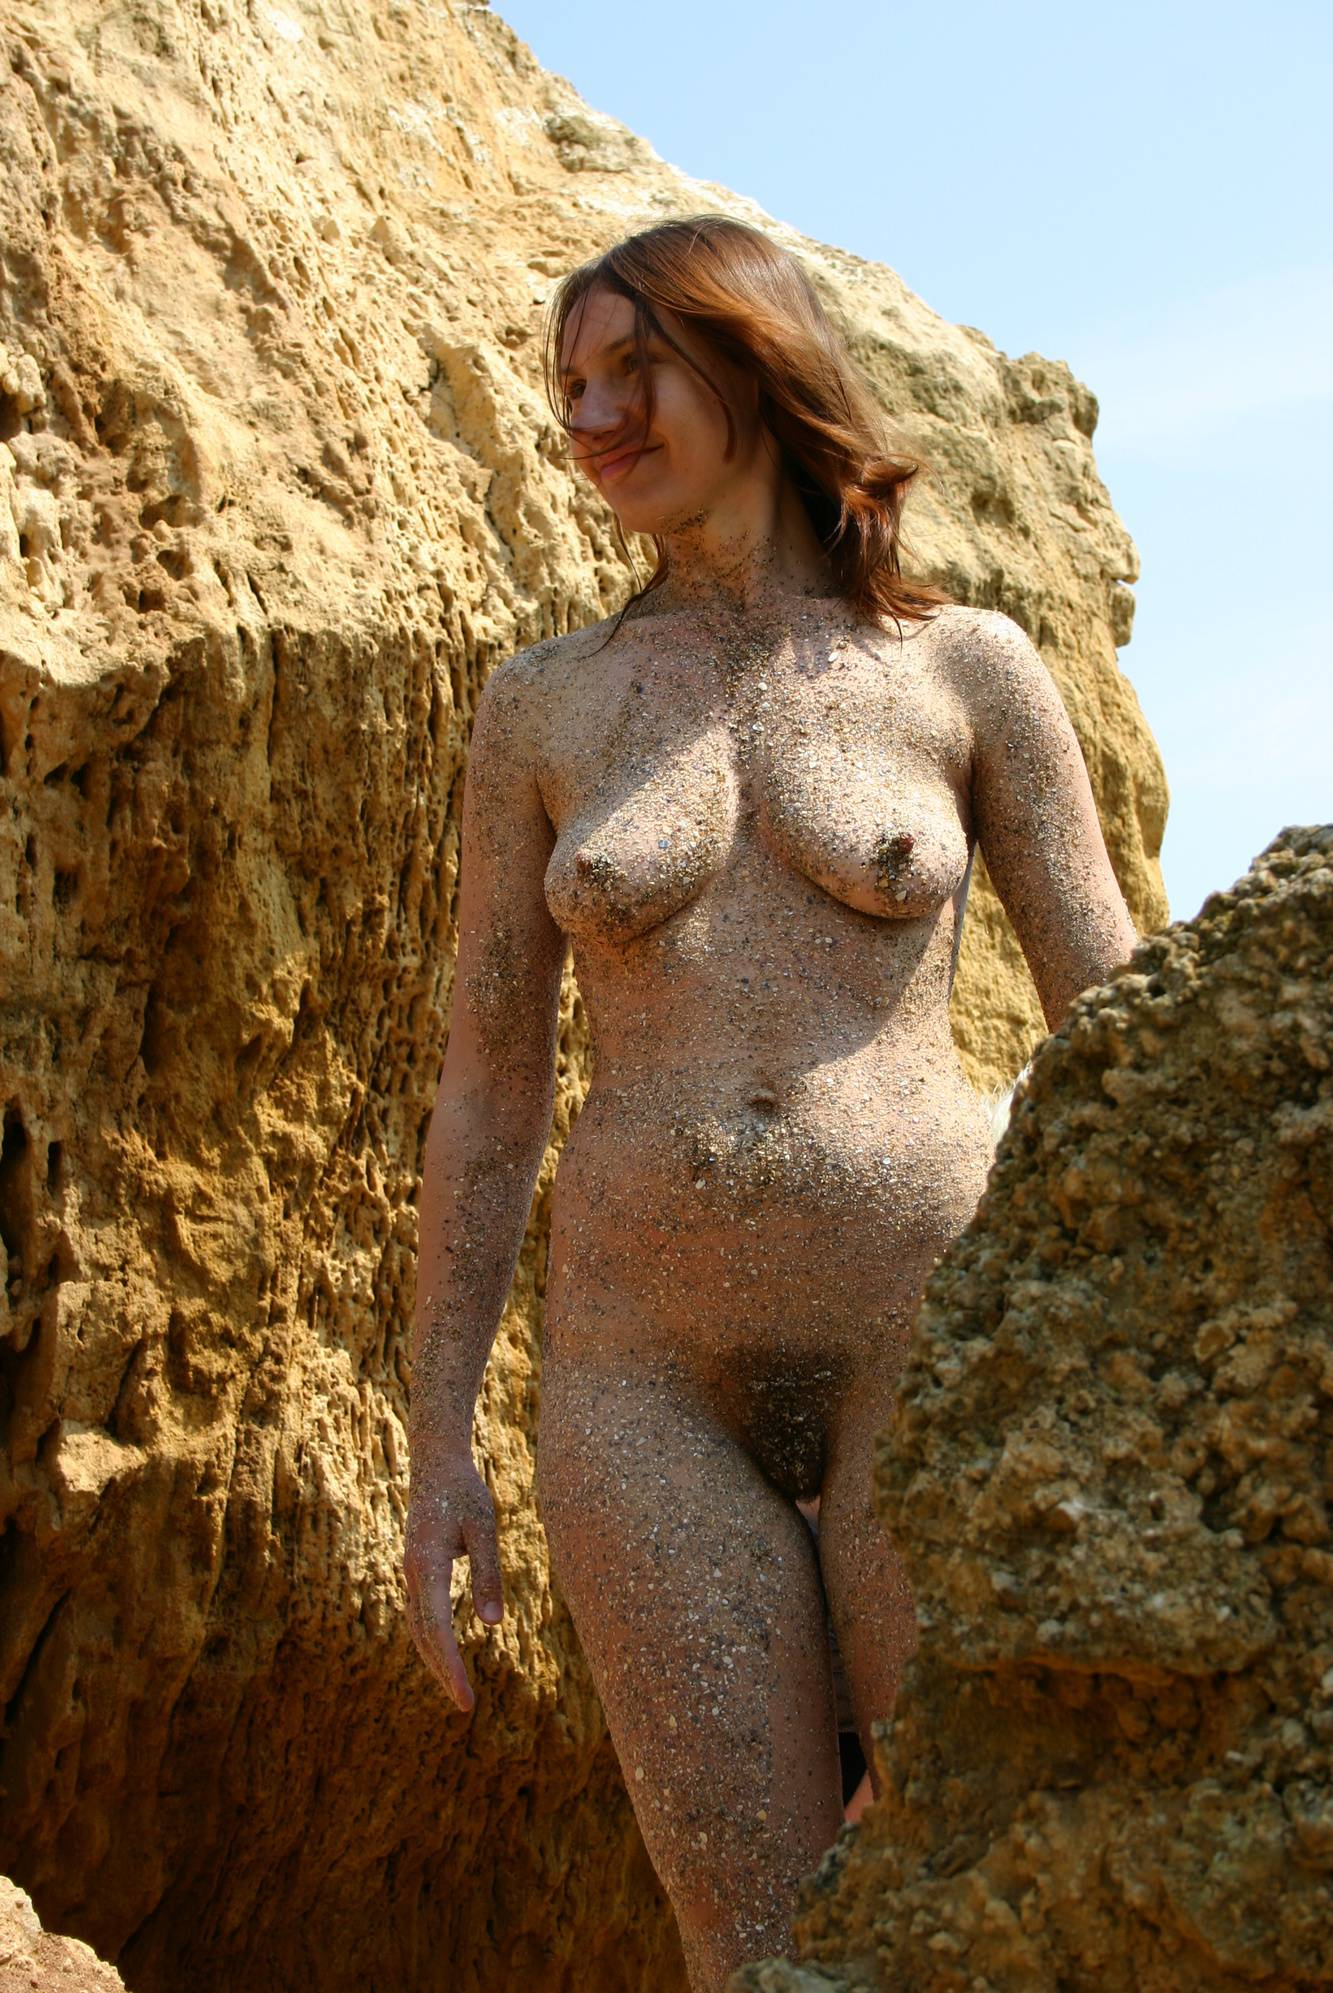 Nudist Photos Out of Hiding Here I Come - 2